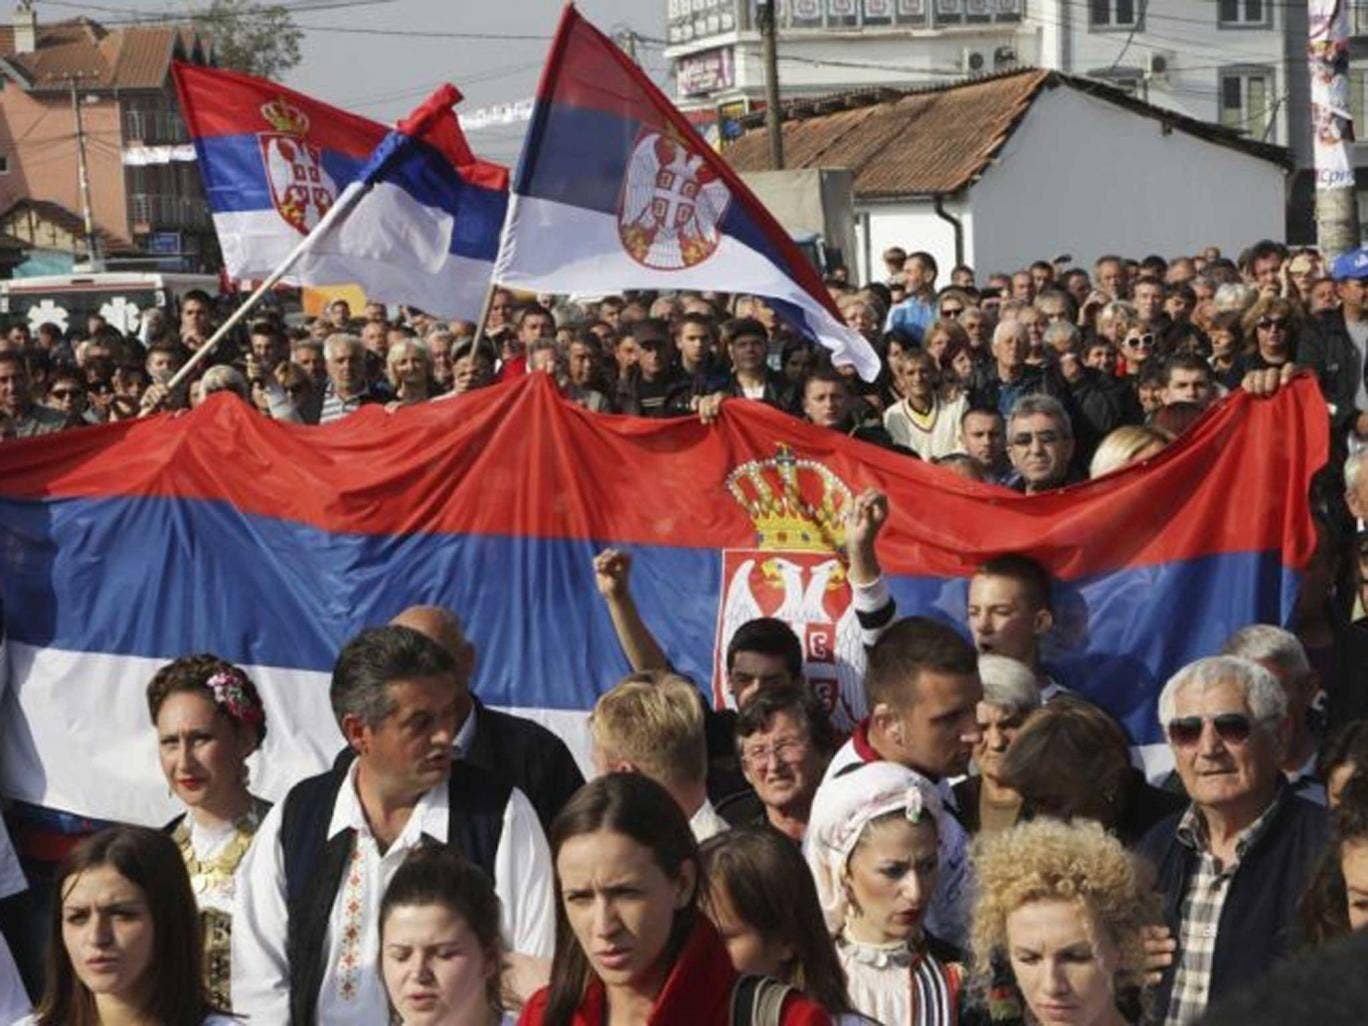 Taking sides: a rally by Kosovo Serbs